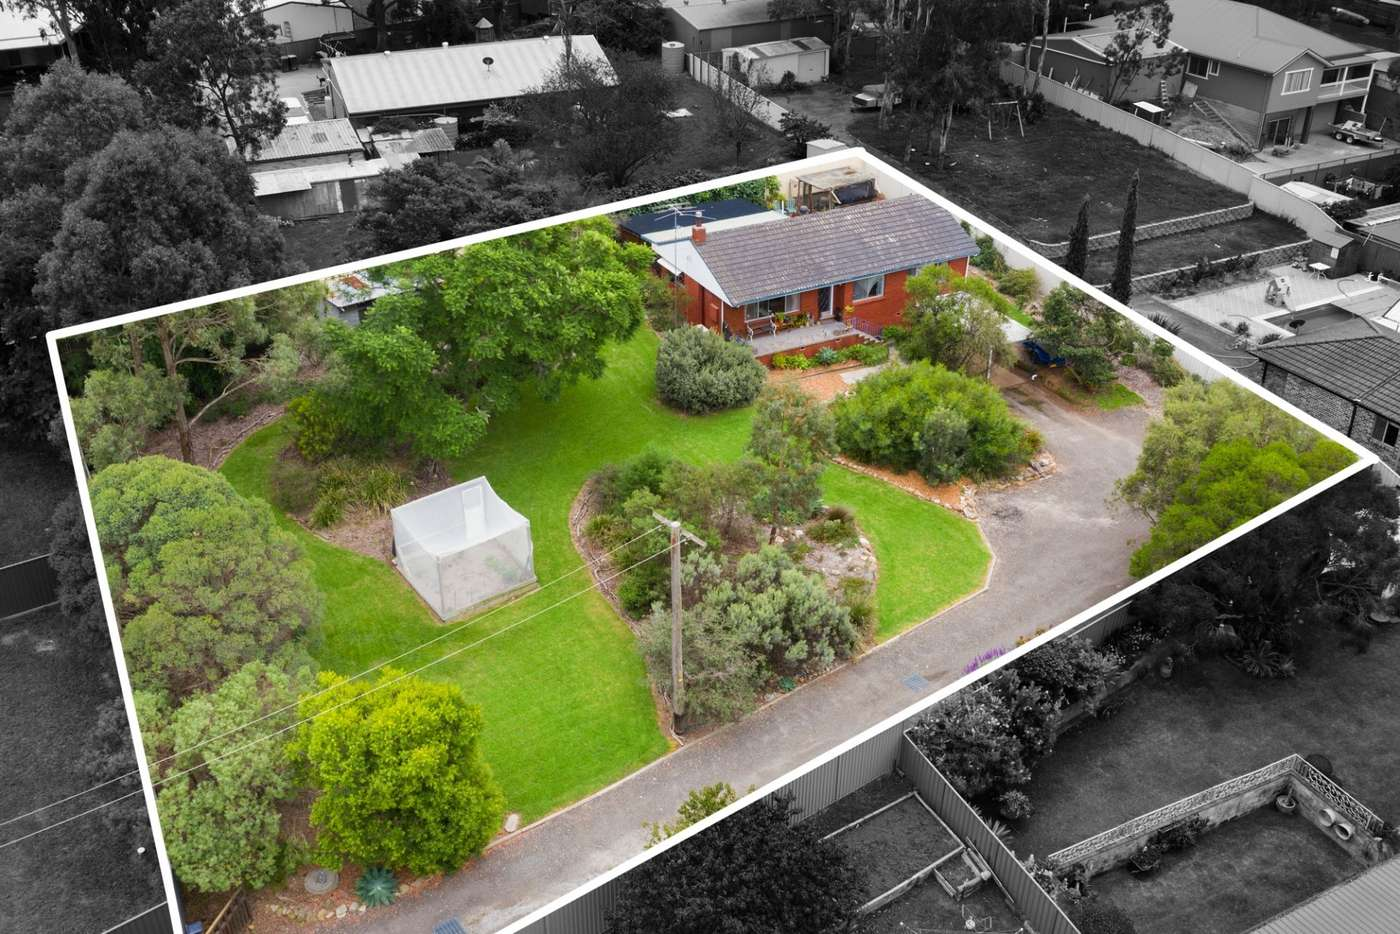 Main view of Homely house listing, 9 Tahmoor Road, Tahmoor NSW 2573